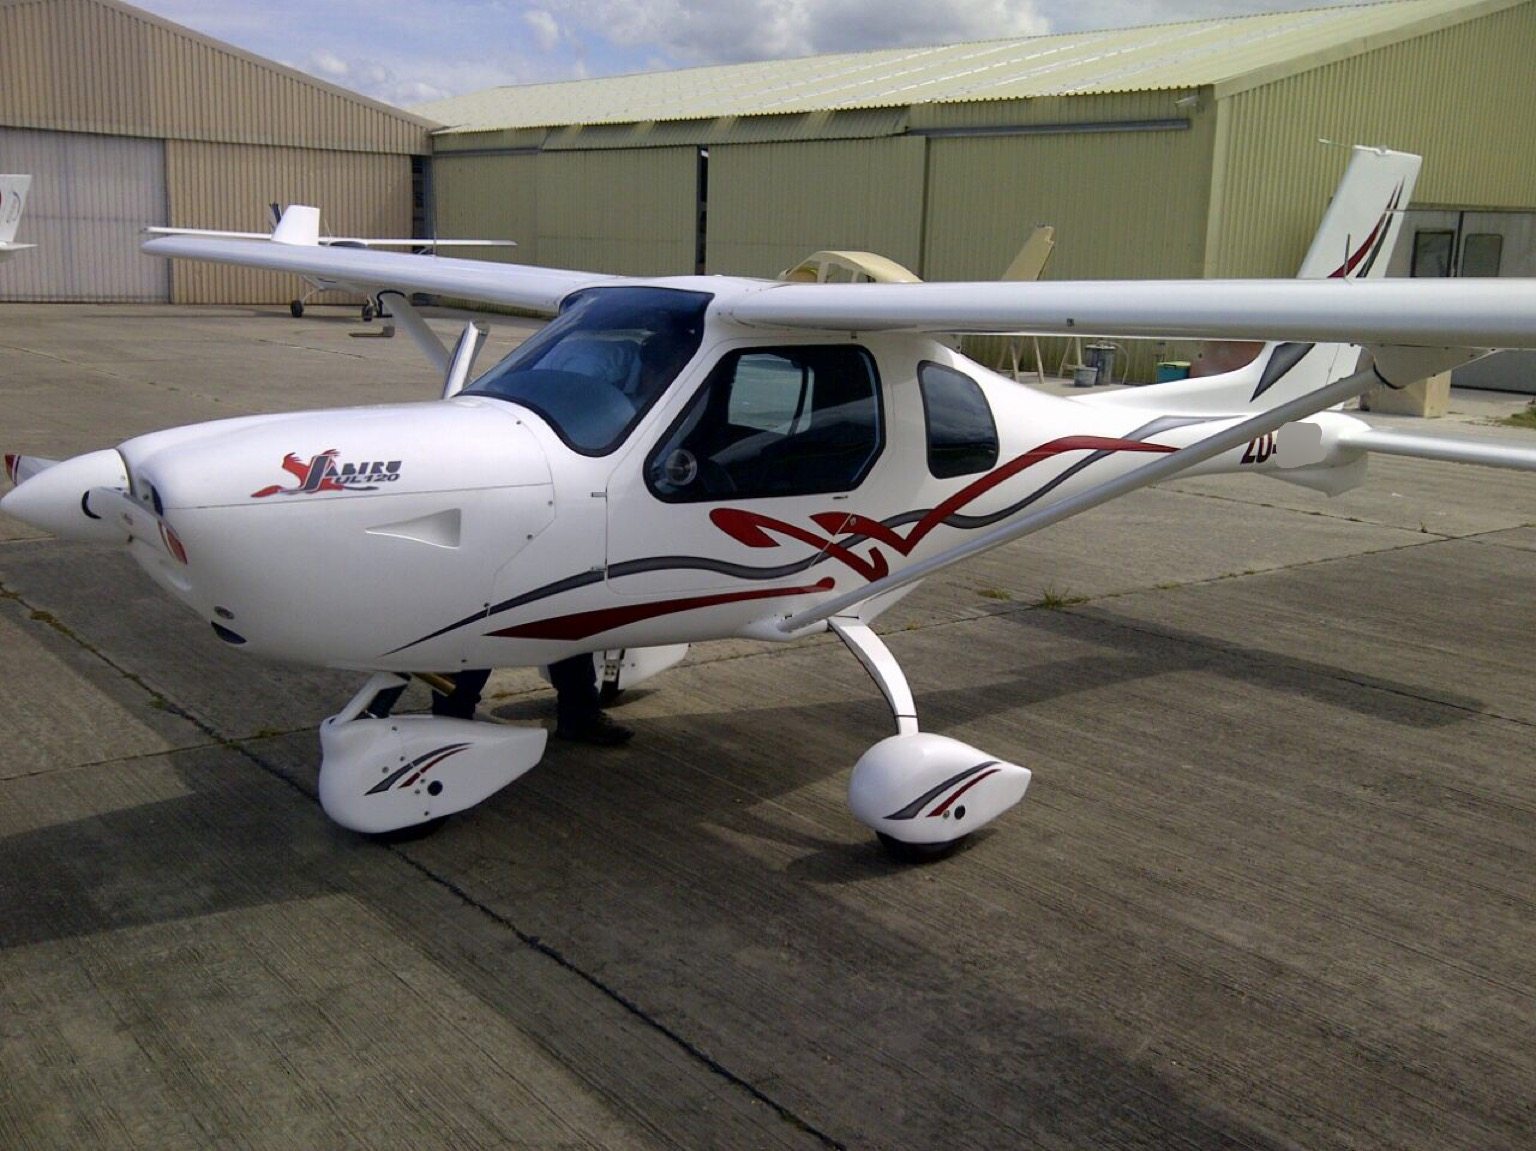 Jabiru Aircraft For Sale South Africa ✓ The Decor of Christmas